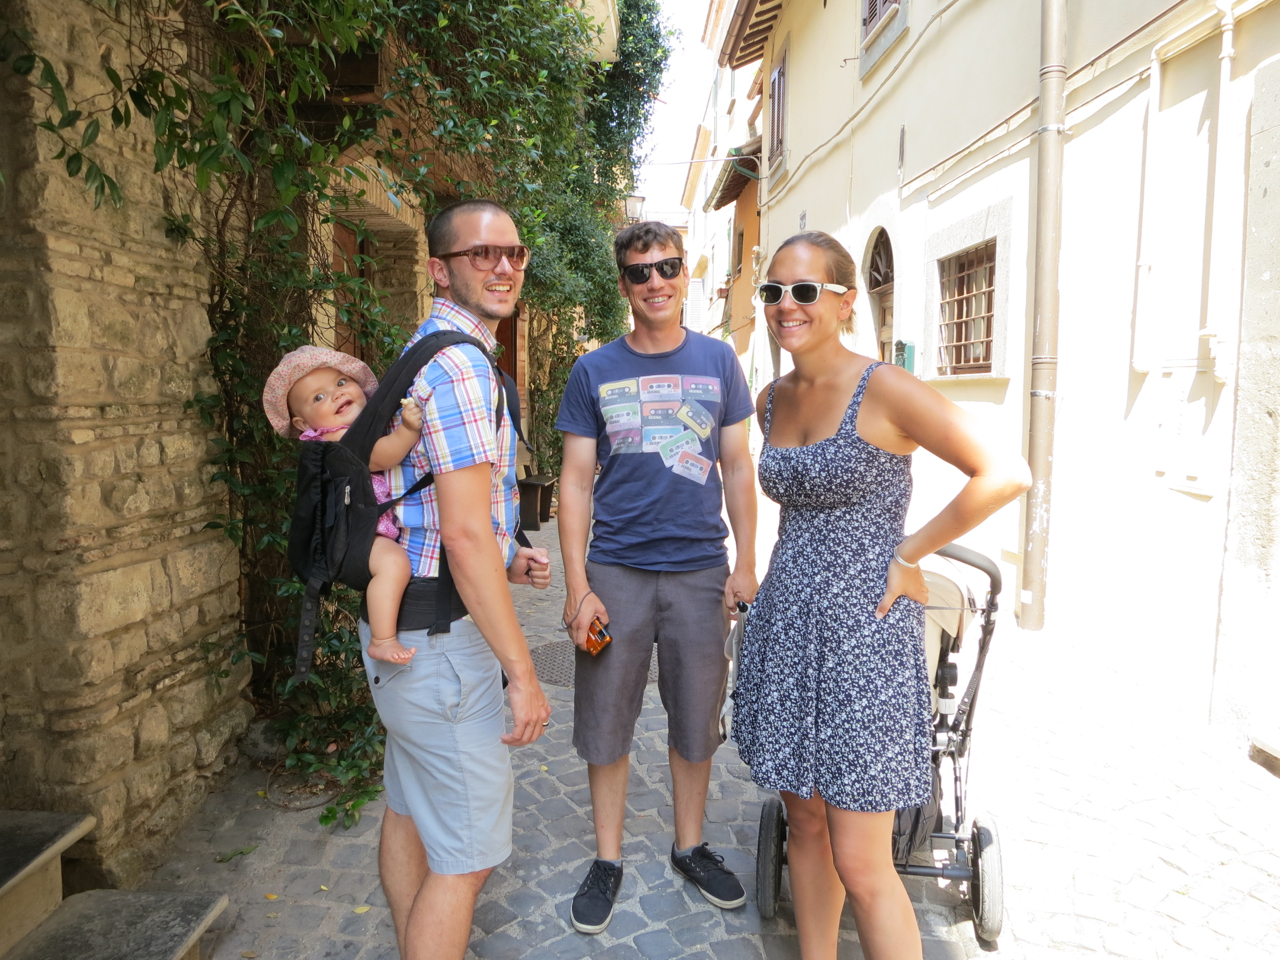 Summer 2013 in Italy - Léonore, Matthieu, Frantz & my little sister Michelle